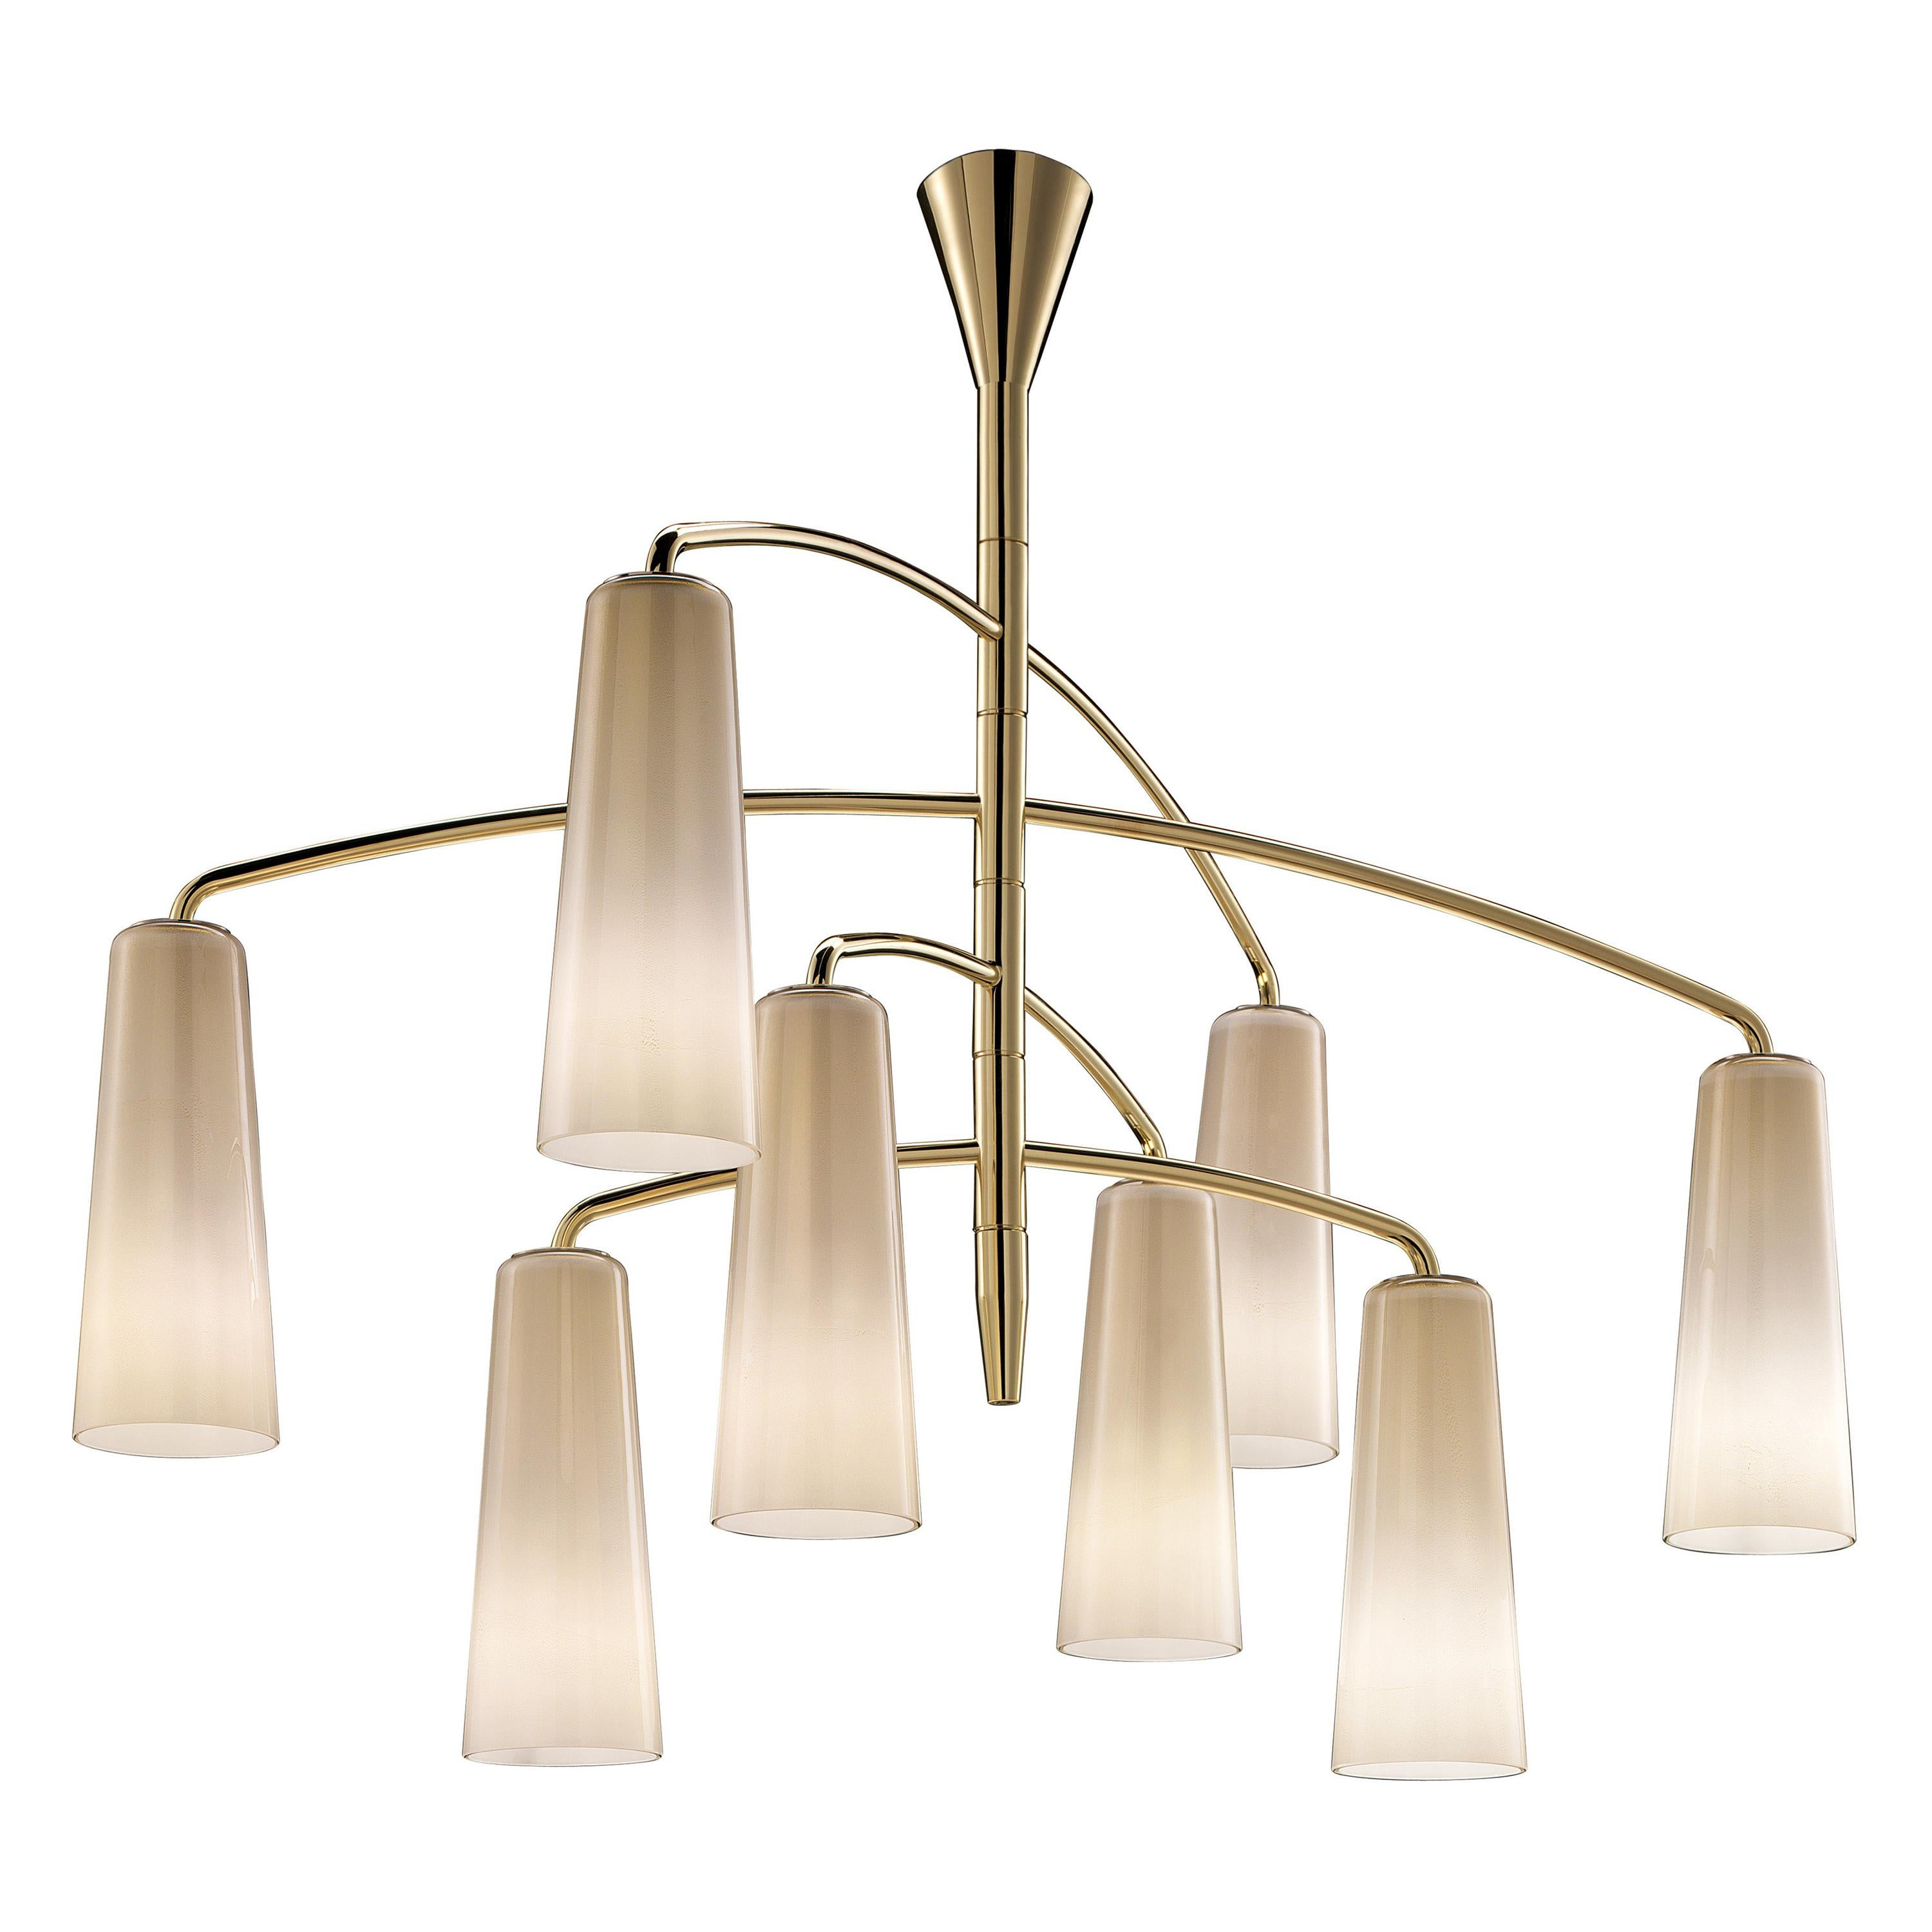 Colimacon 7206 Suspension Lamp in a Gold Finish, by Marc Sadler, Barovier&Toso